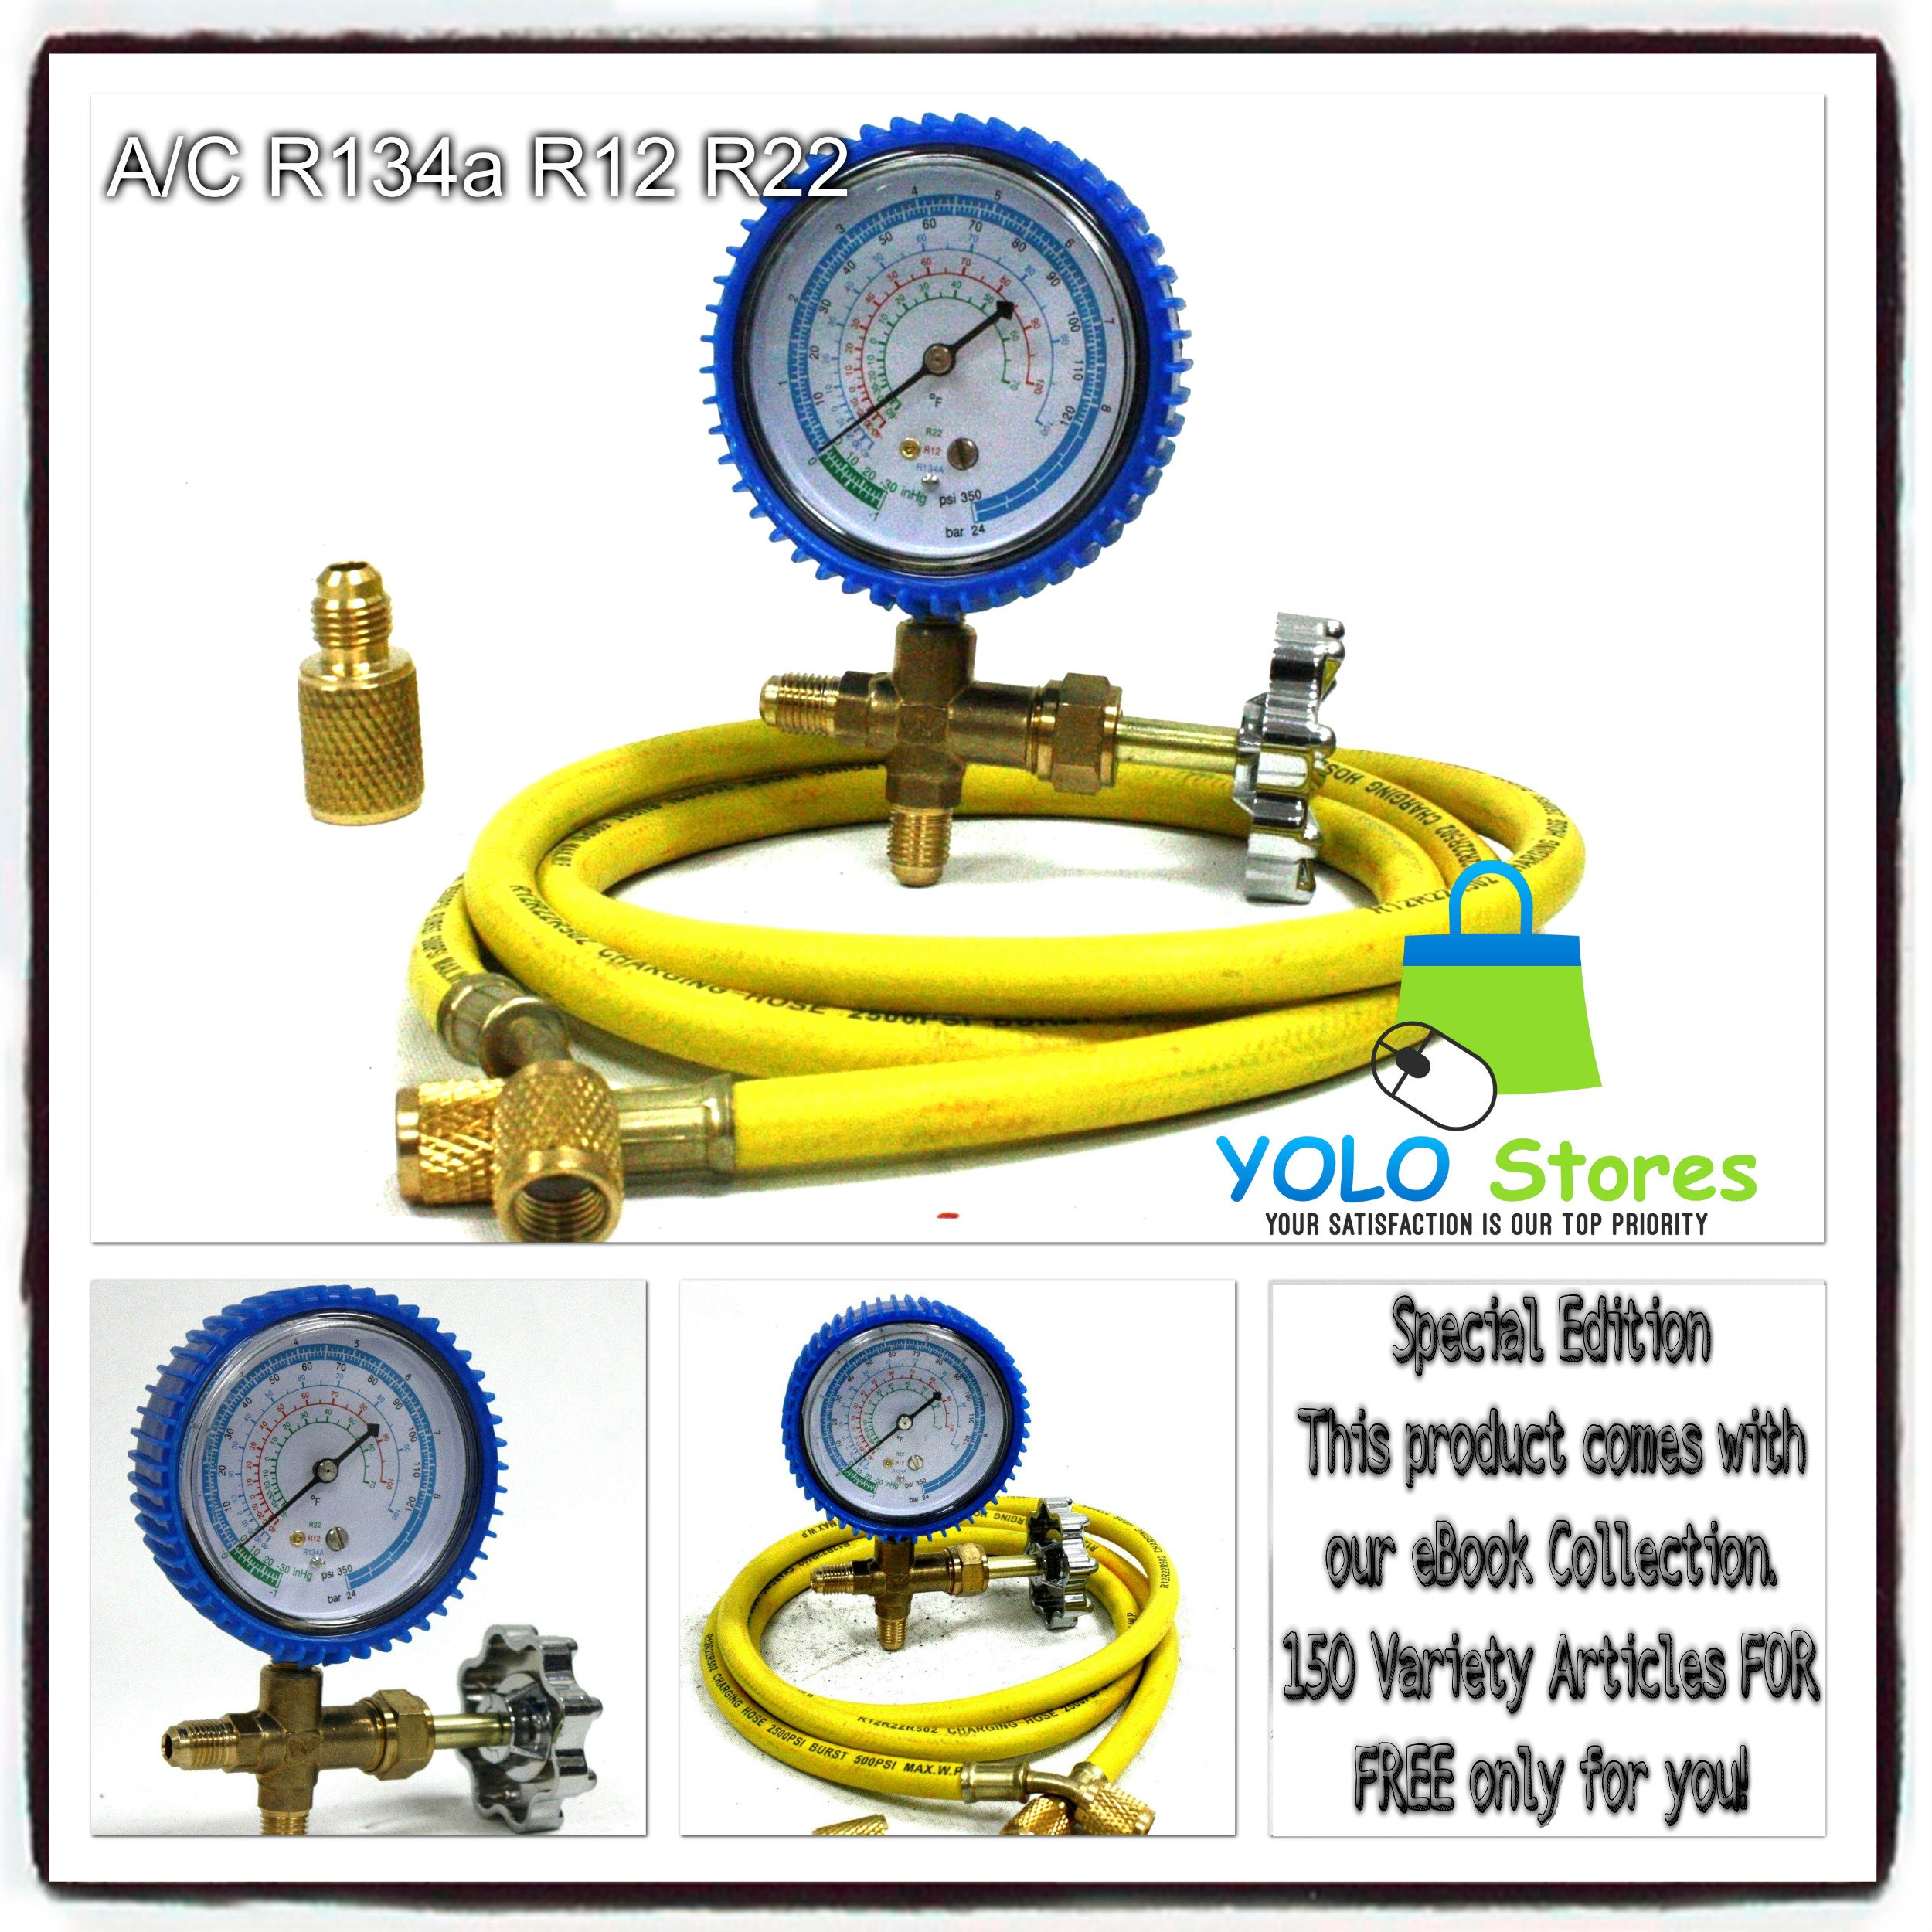 A/C R134a R12 R22 Single Manifold Gauge Kit 4 Testing Charging Air Conditioner By YOLO Stores